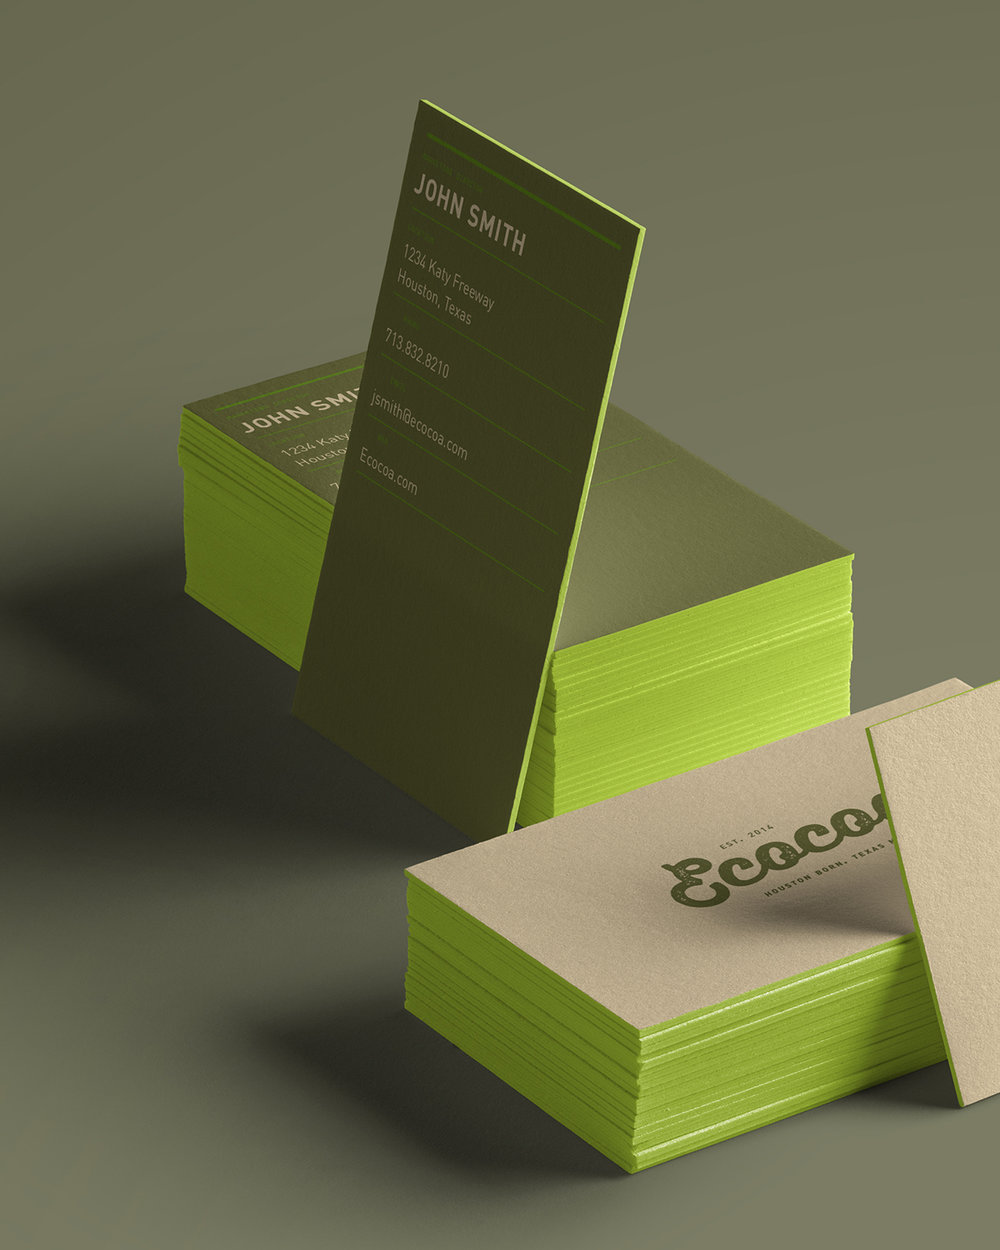 Ecocoa Packaging & Identity